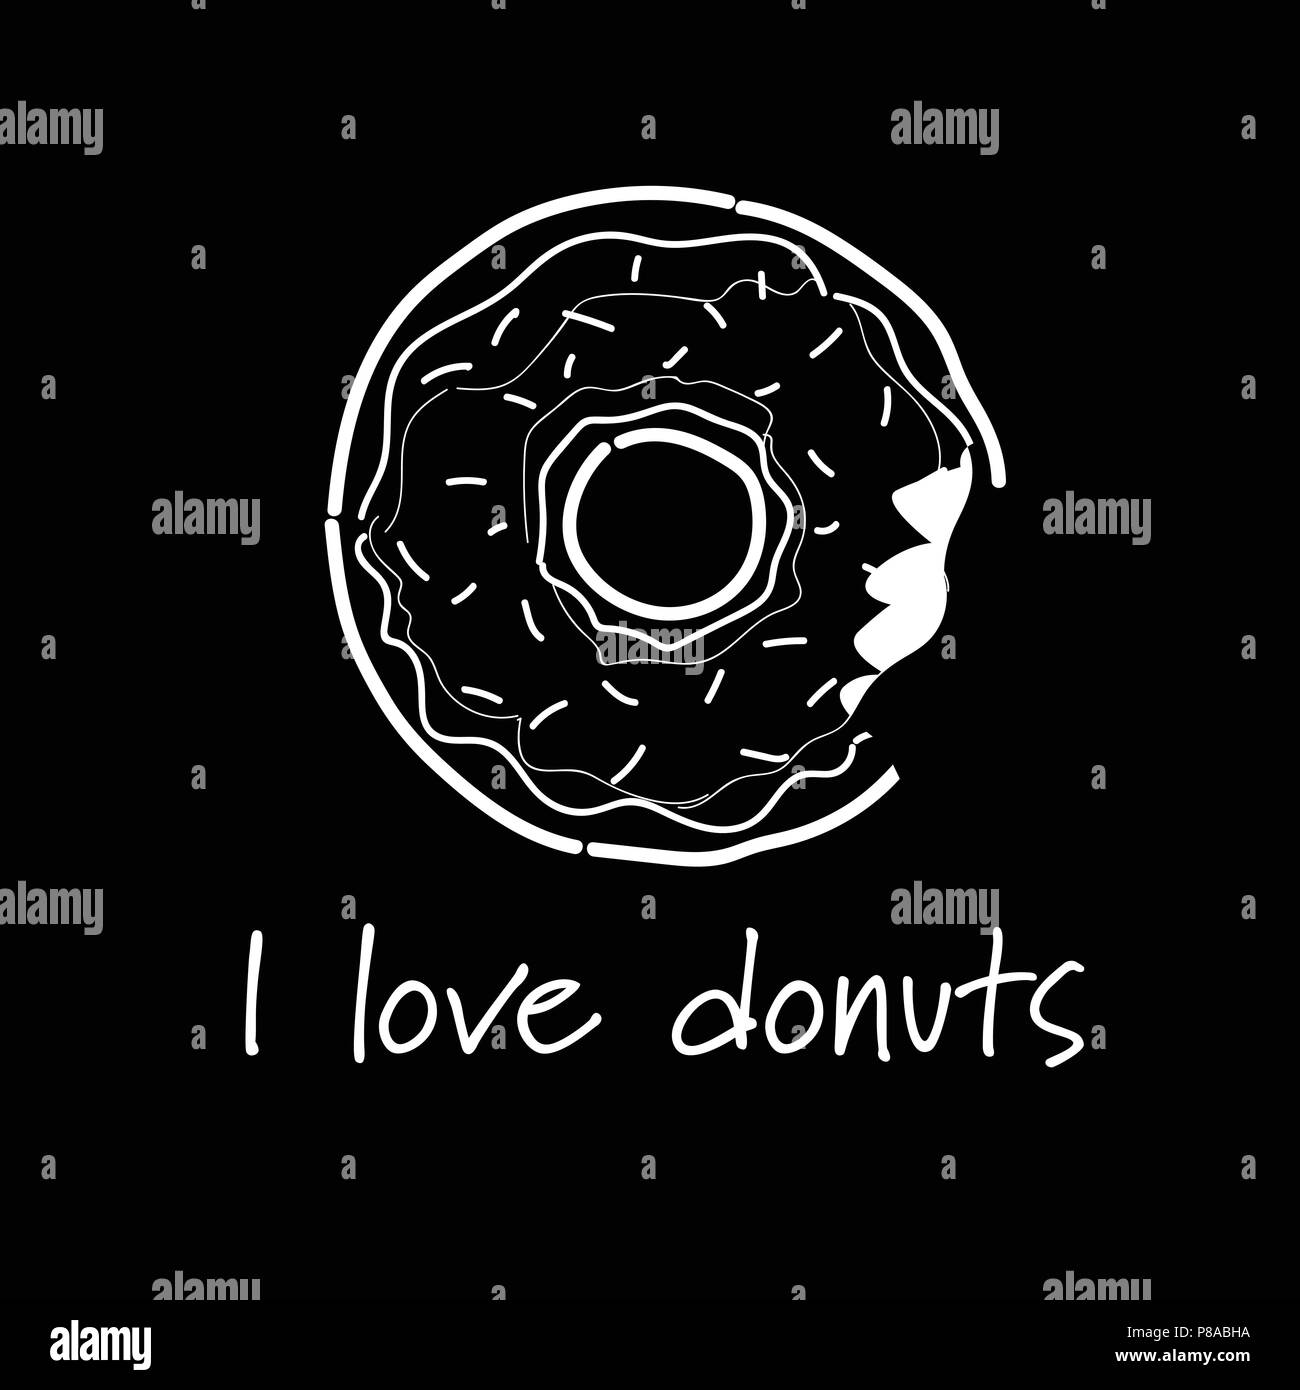 Donuts Covered Icing Bitten Off Lettering Template Greeting Card